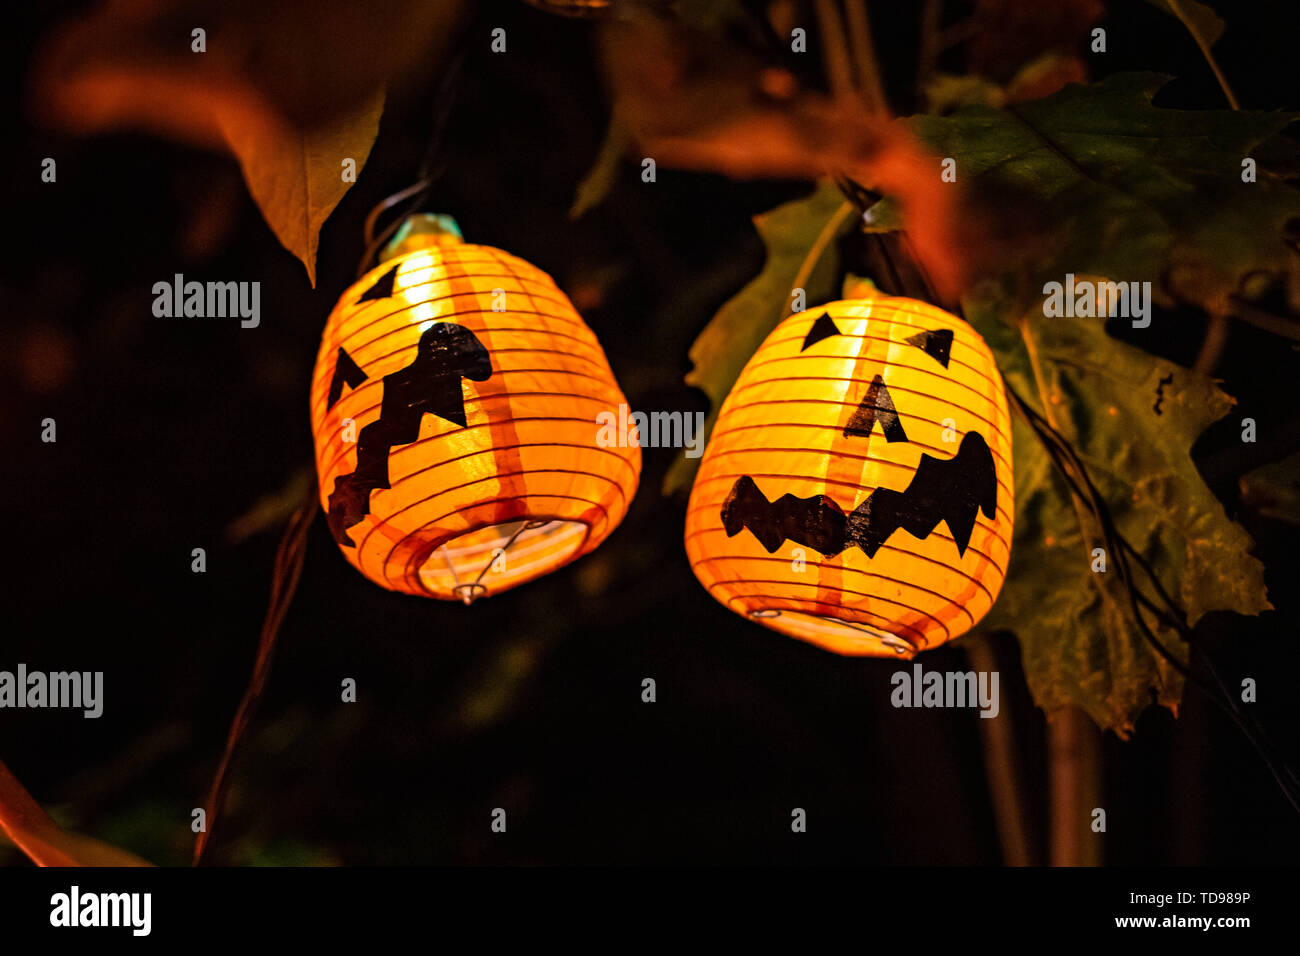 Scary Halloween Decorations Outdoors At Night Lighted Stock